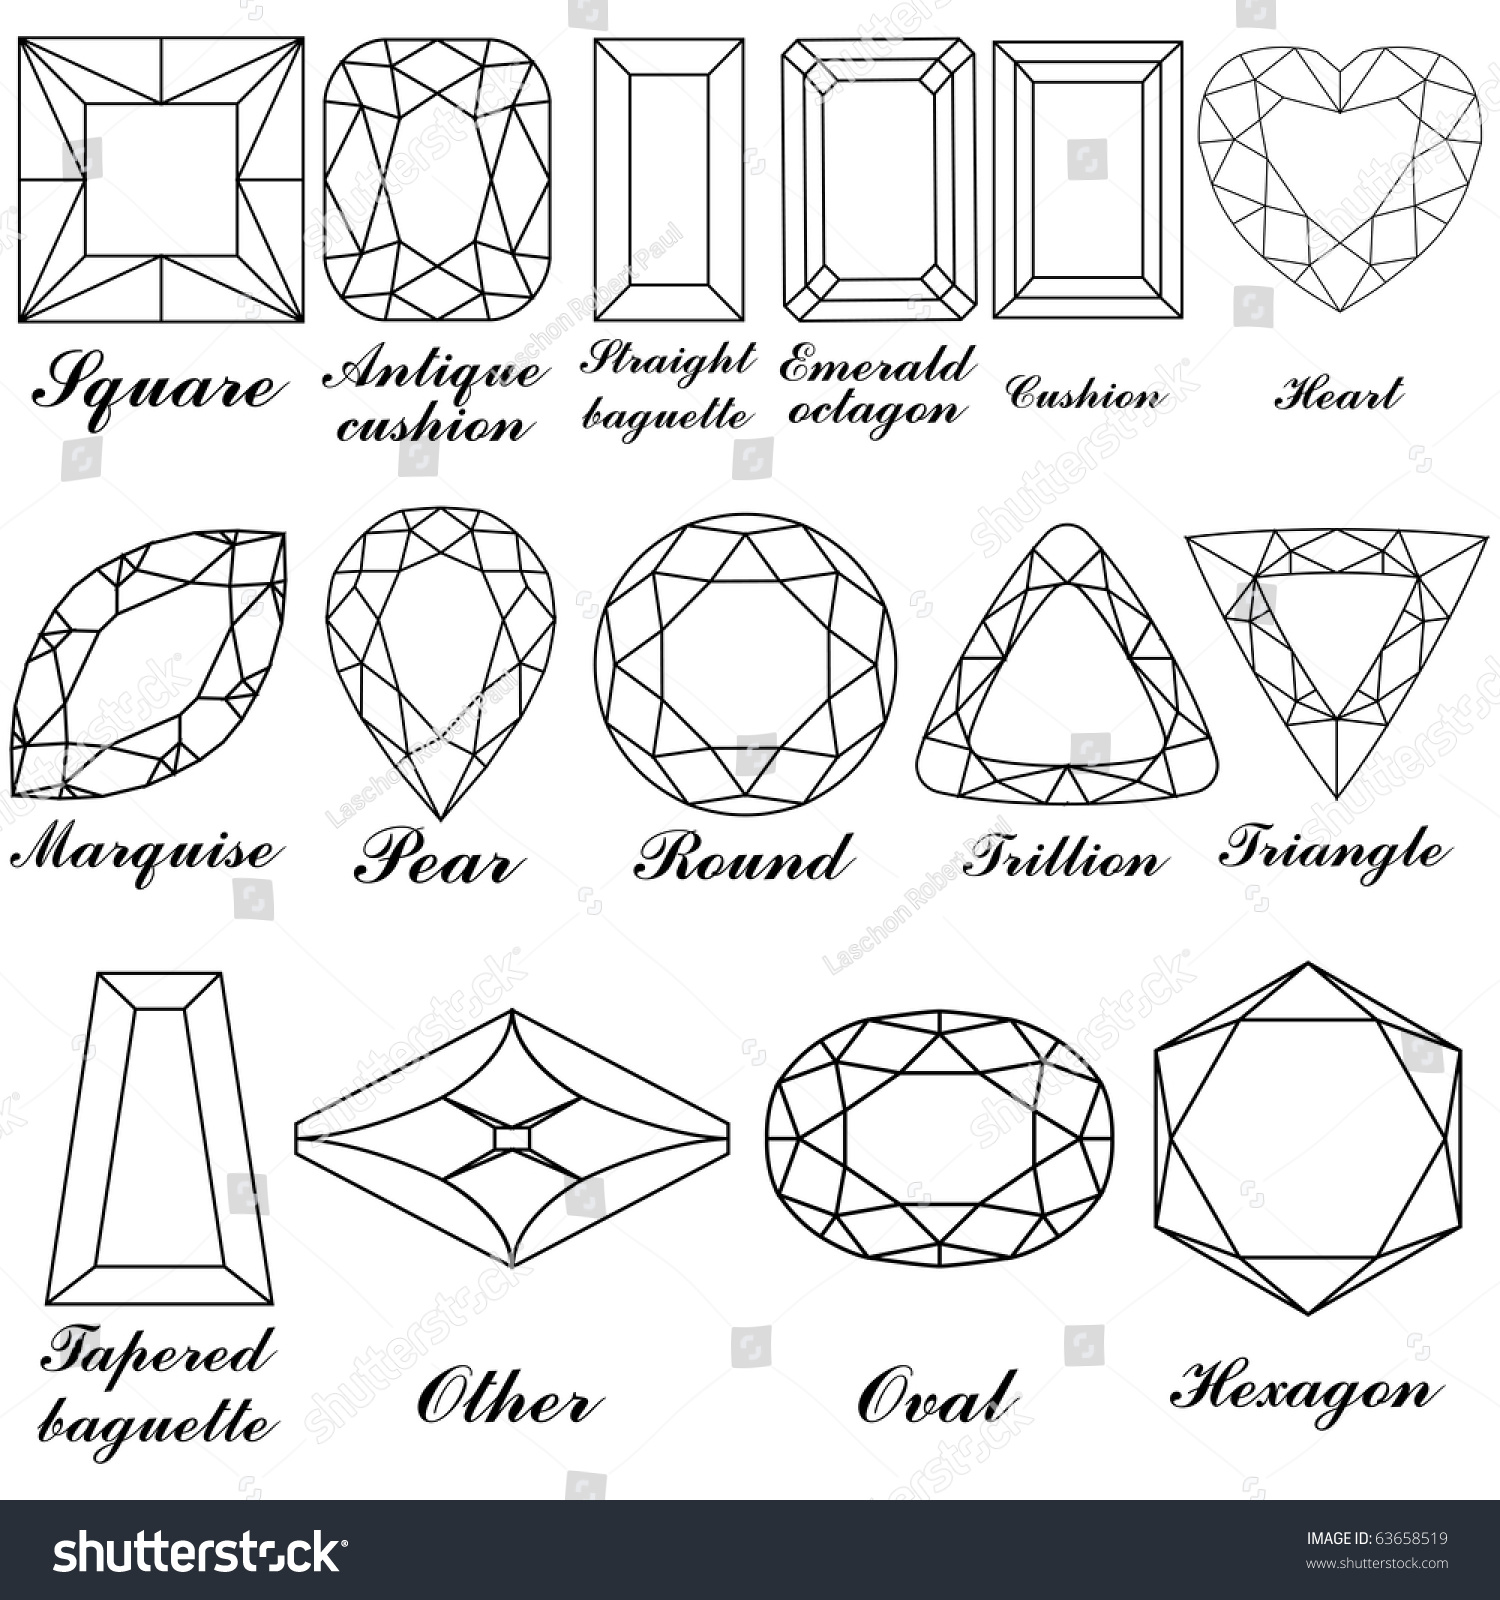 Worksheet Names Shapes stone shapes their names against white stock illustration 63658519 and background abstract art for vector format